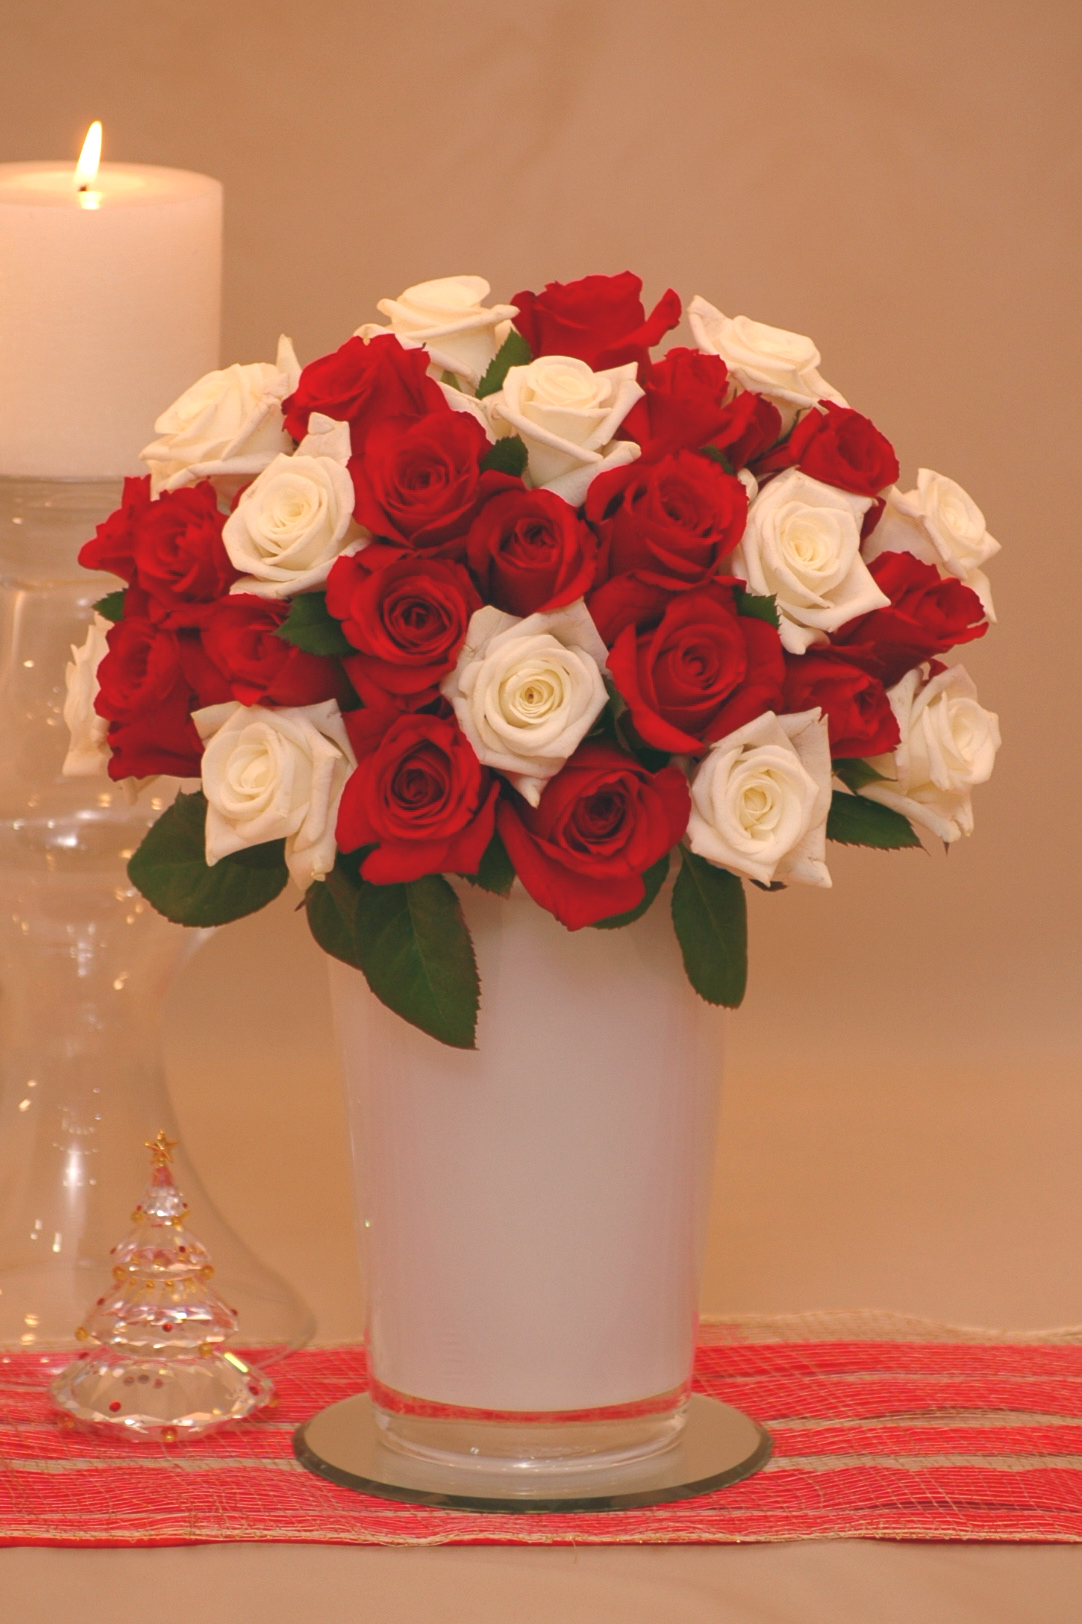 Send Your Holiday Greetings with Flowers